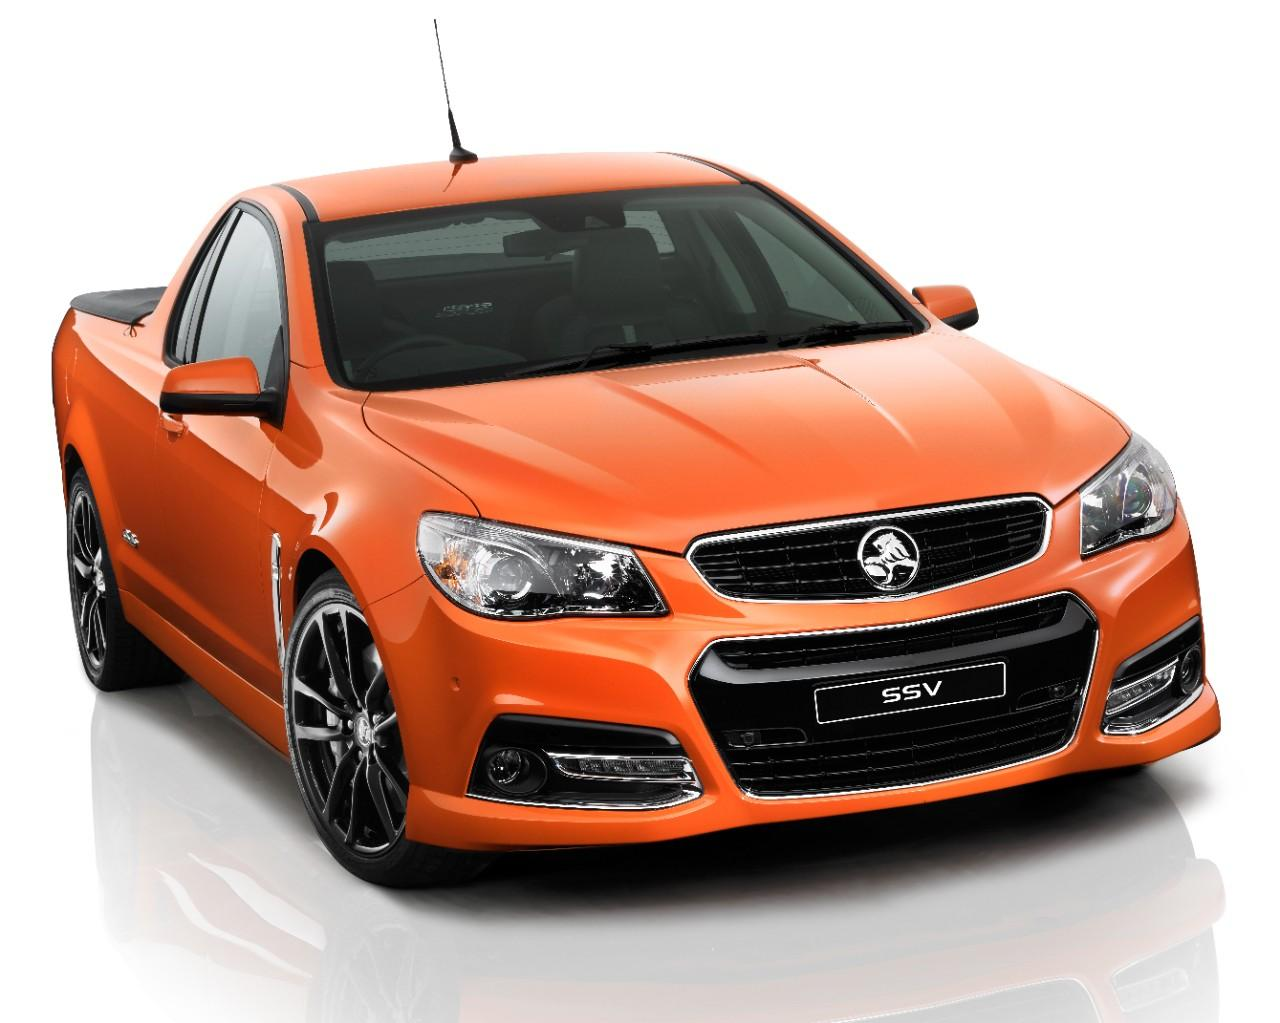 Australian government says GM's Holden division isn't ...